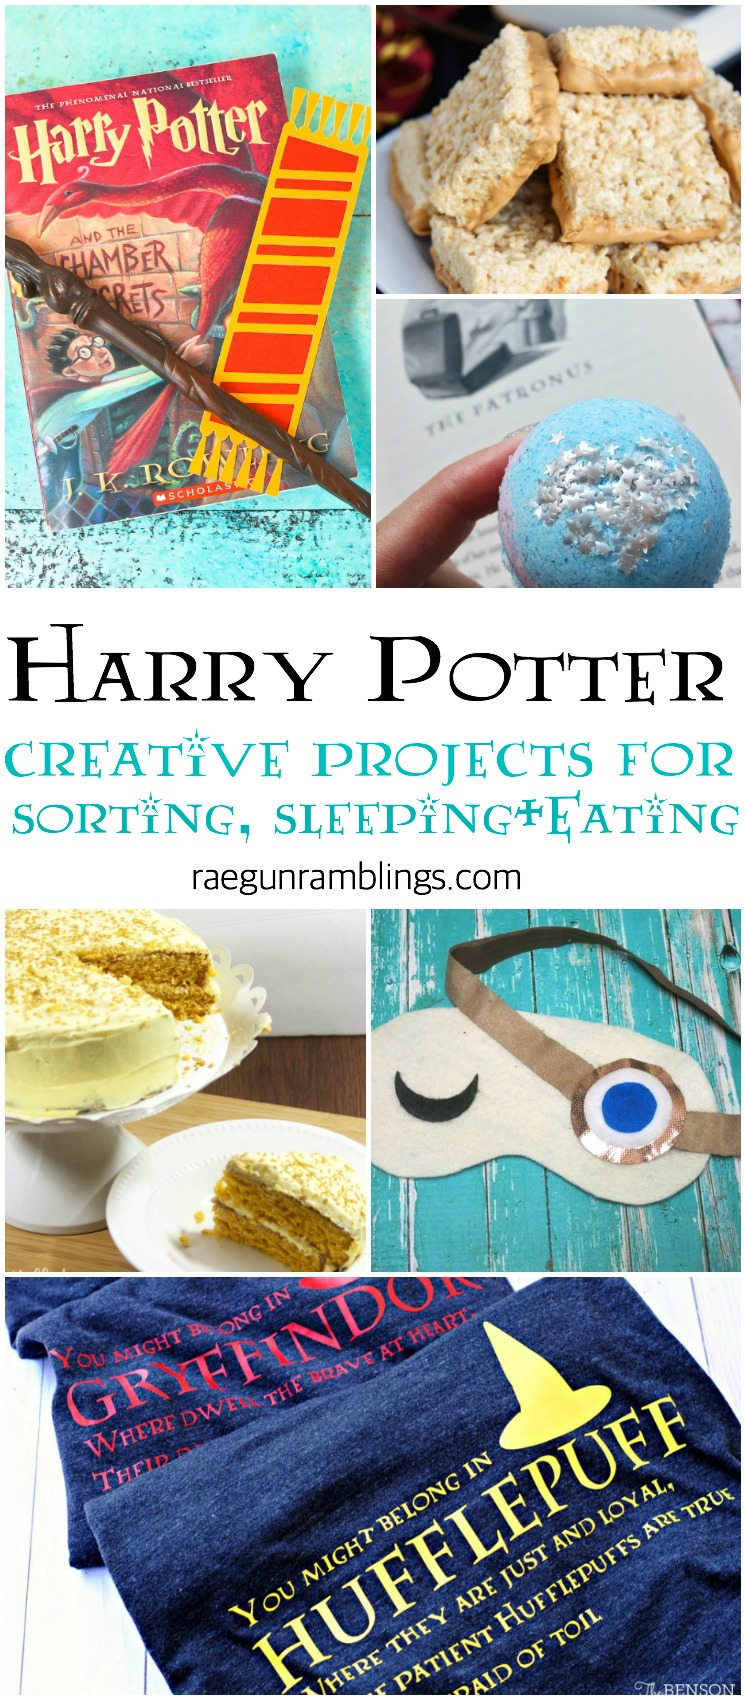 DIY Harry Potter SGV files tutorials and recipes